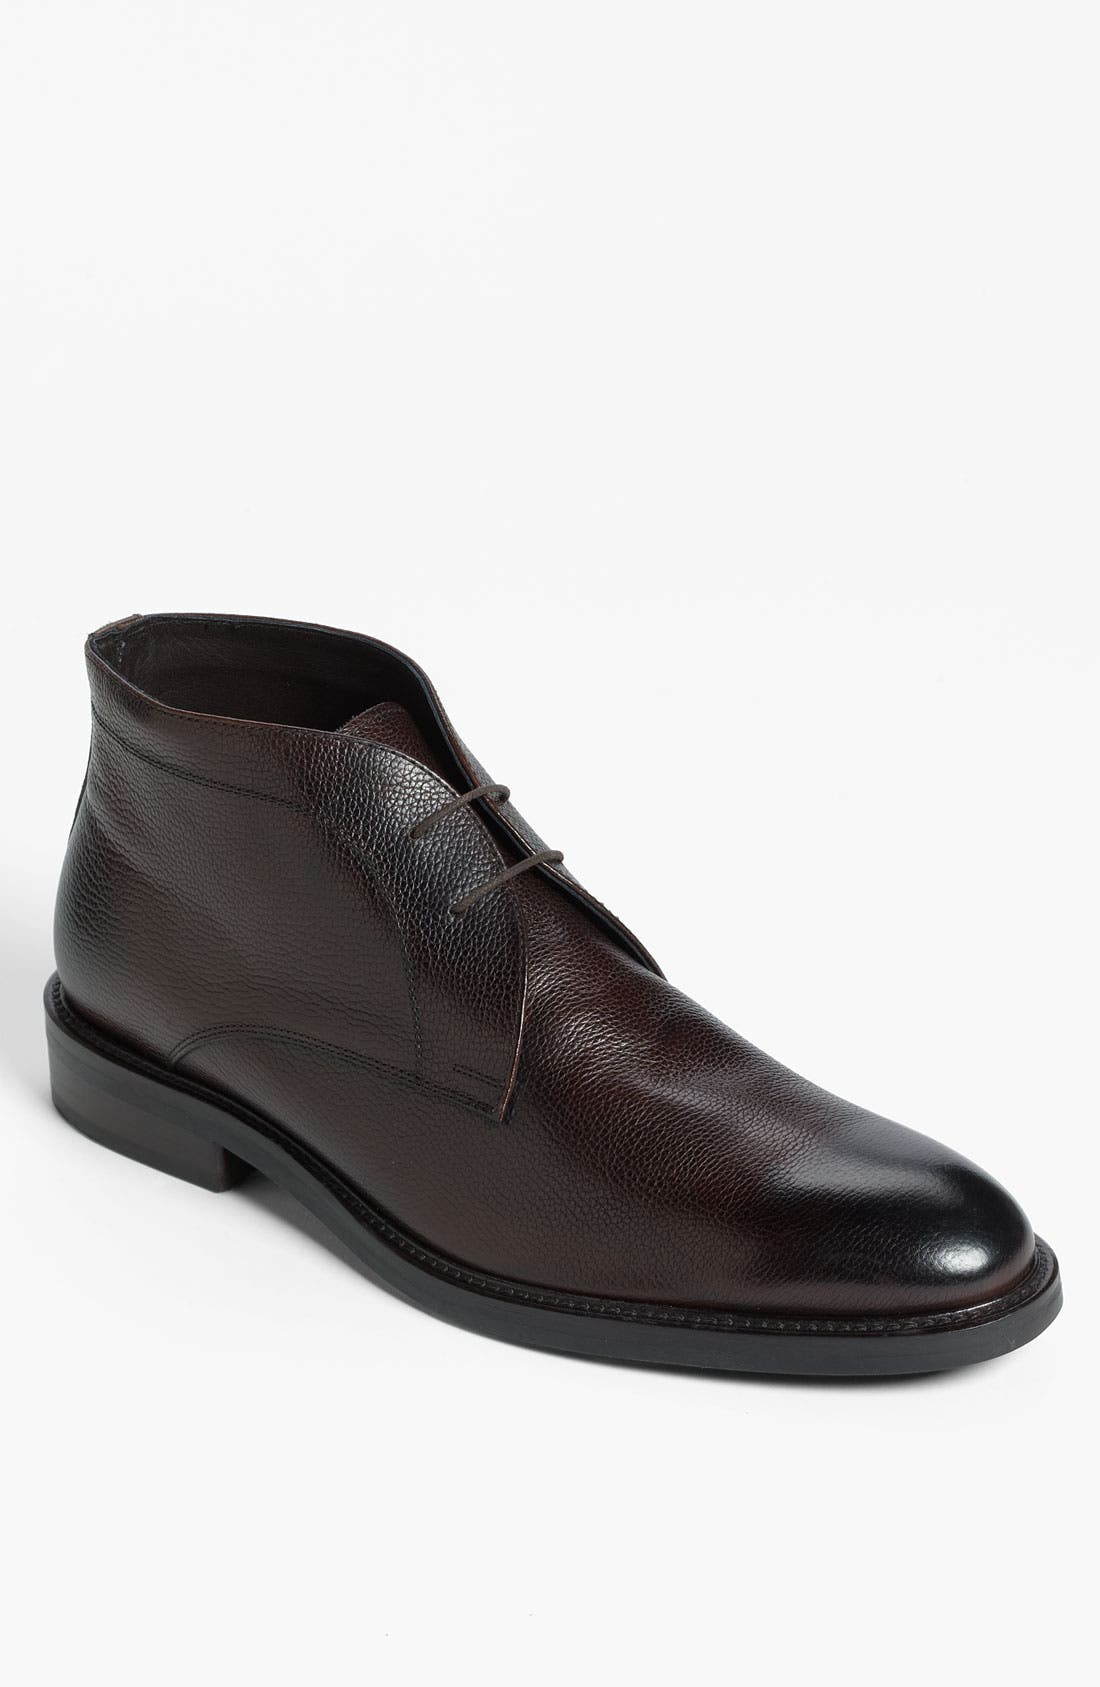 Main Image - To Boot New York 'Easton' Chukka Boot